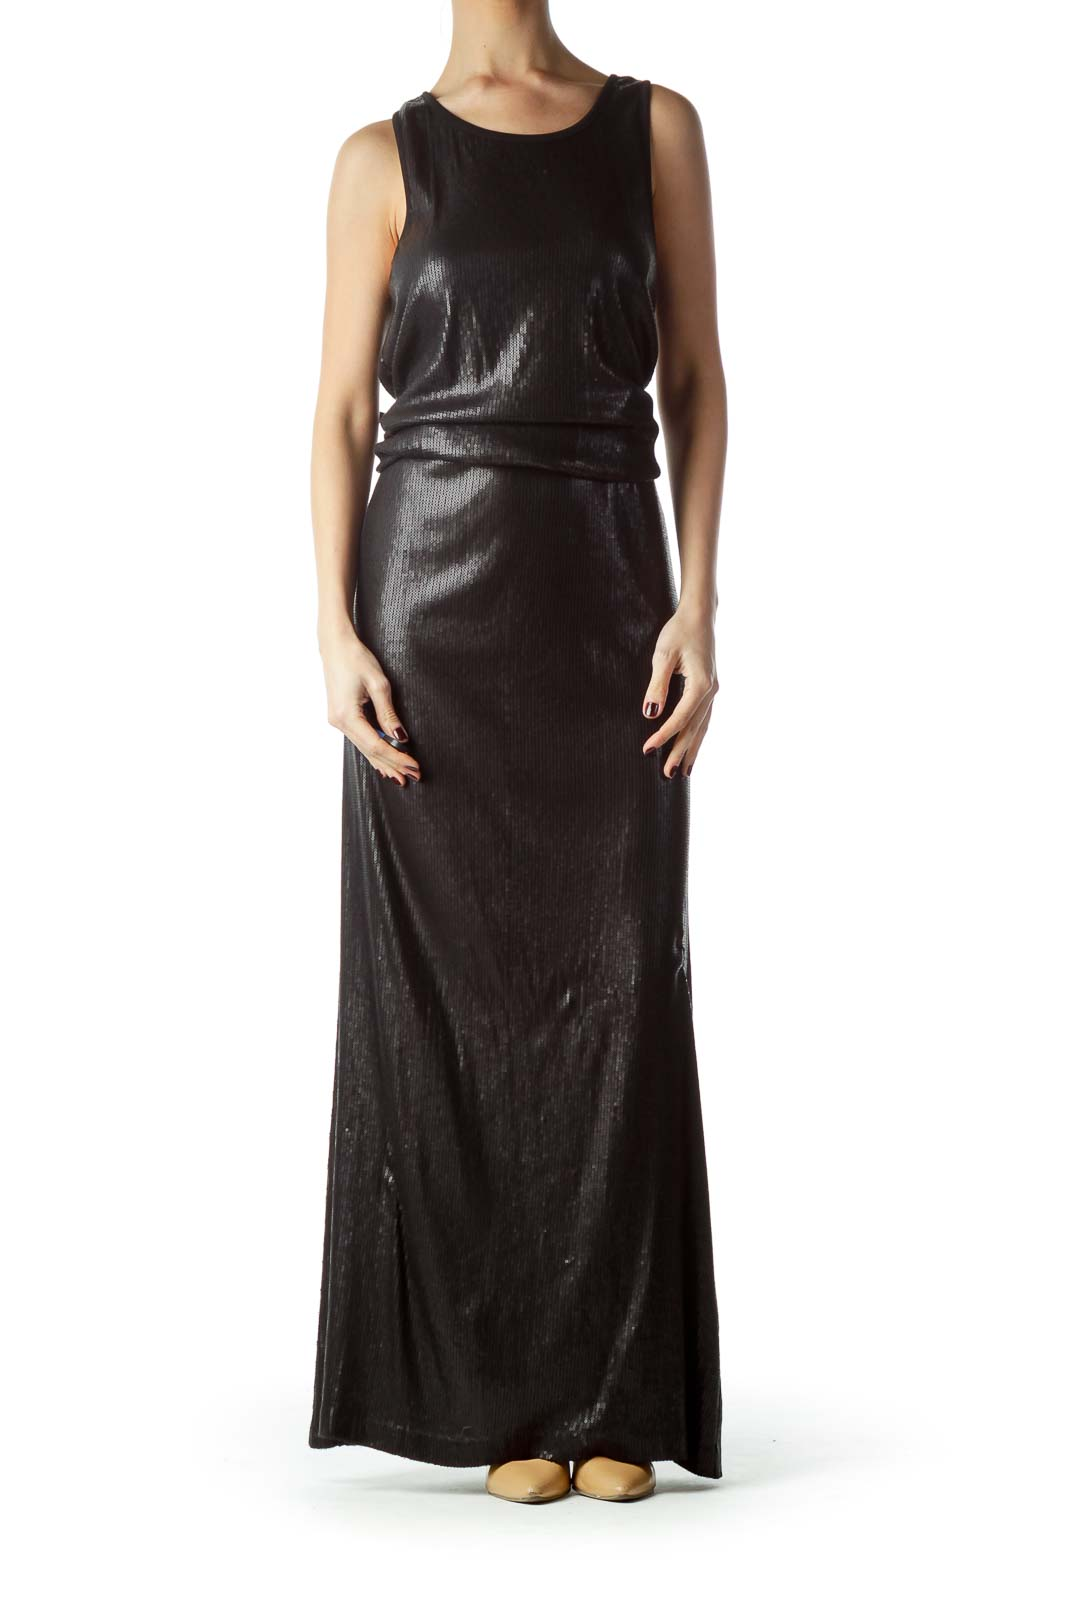 Black Sequined Body Sleeveless Maxi Dress